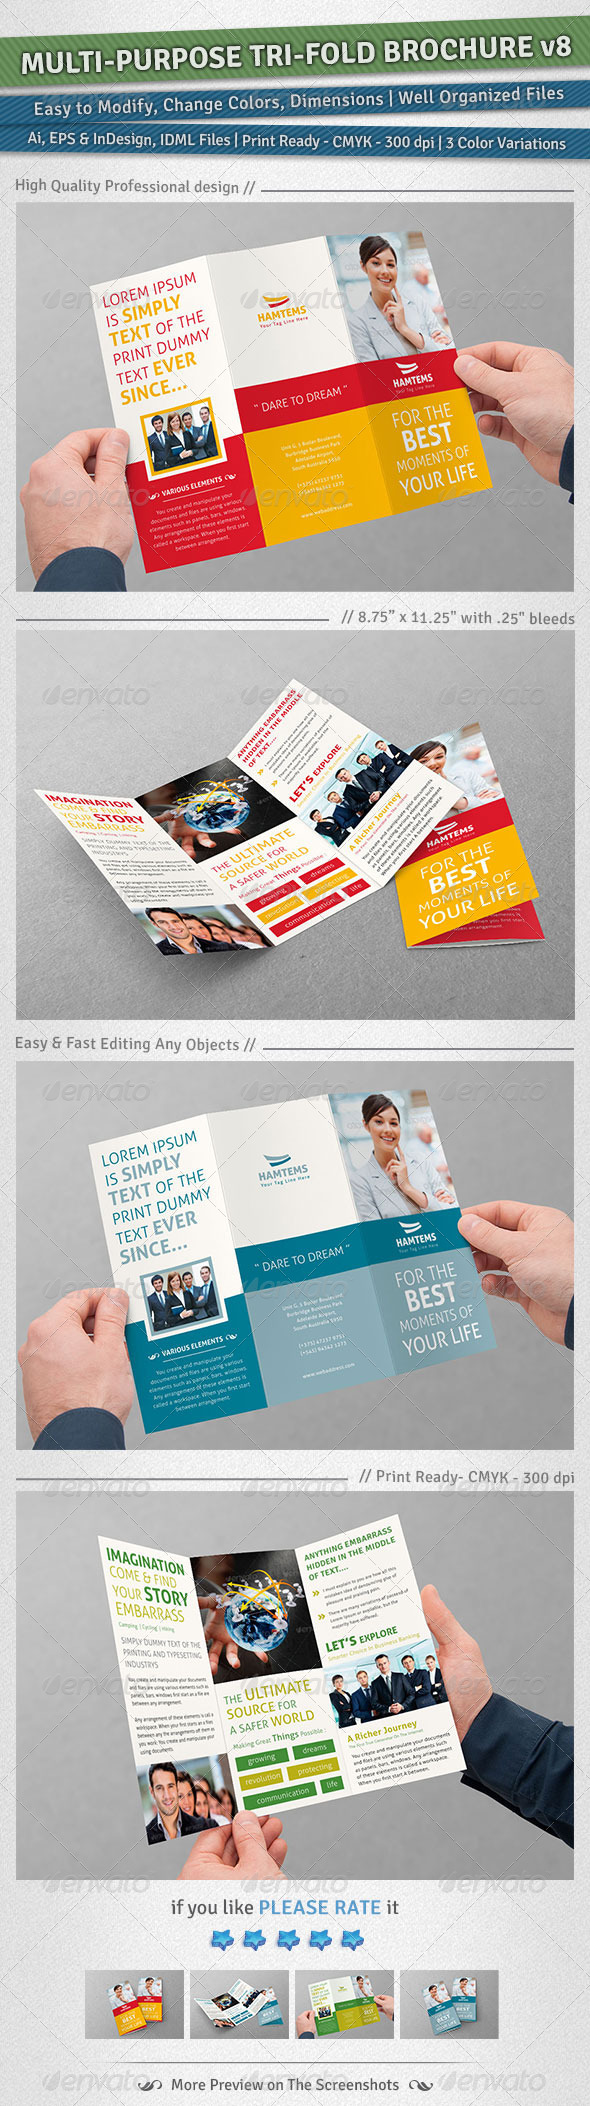 Multi-purpose Tri-Fold Brochure Volume 8